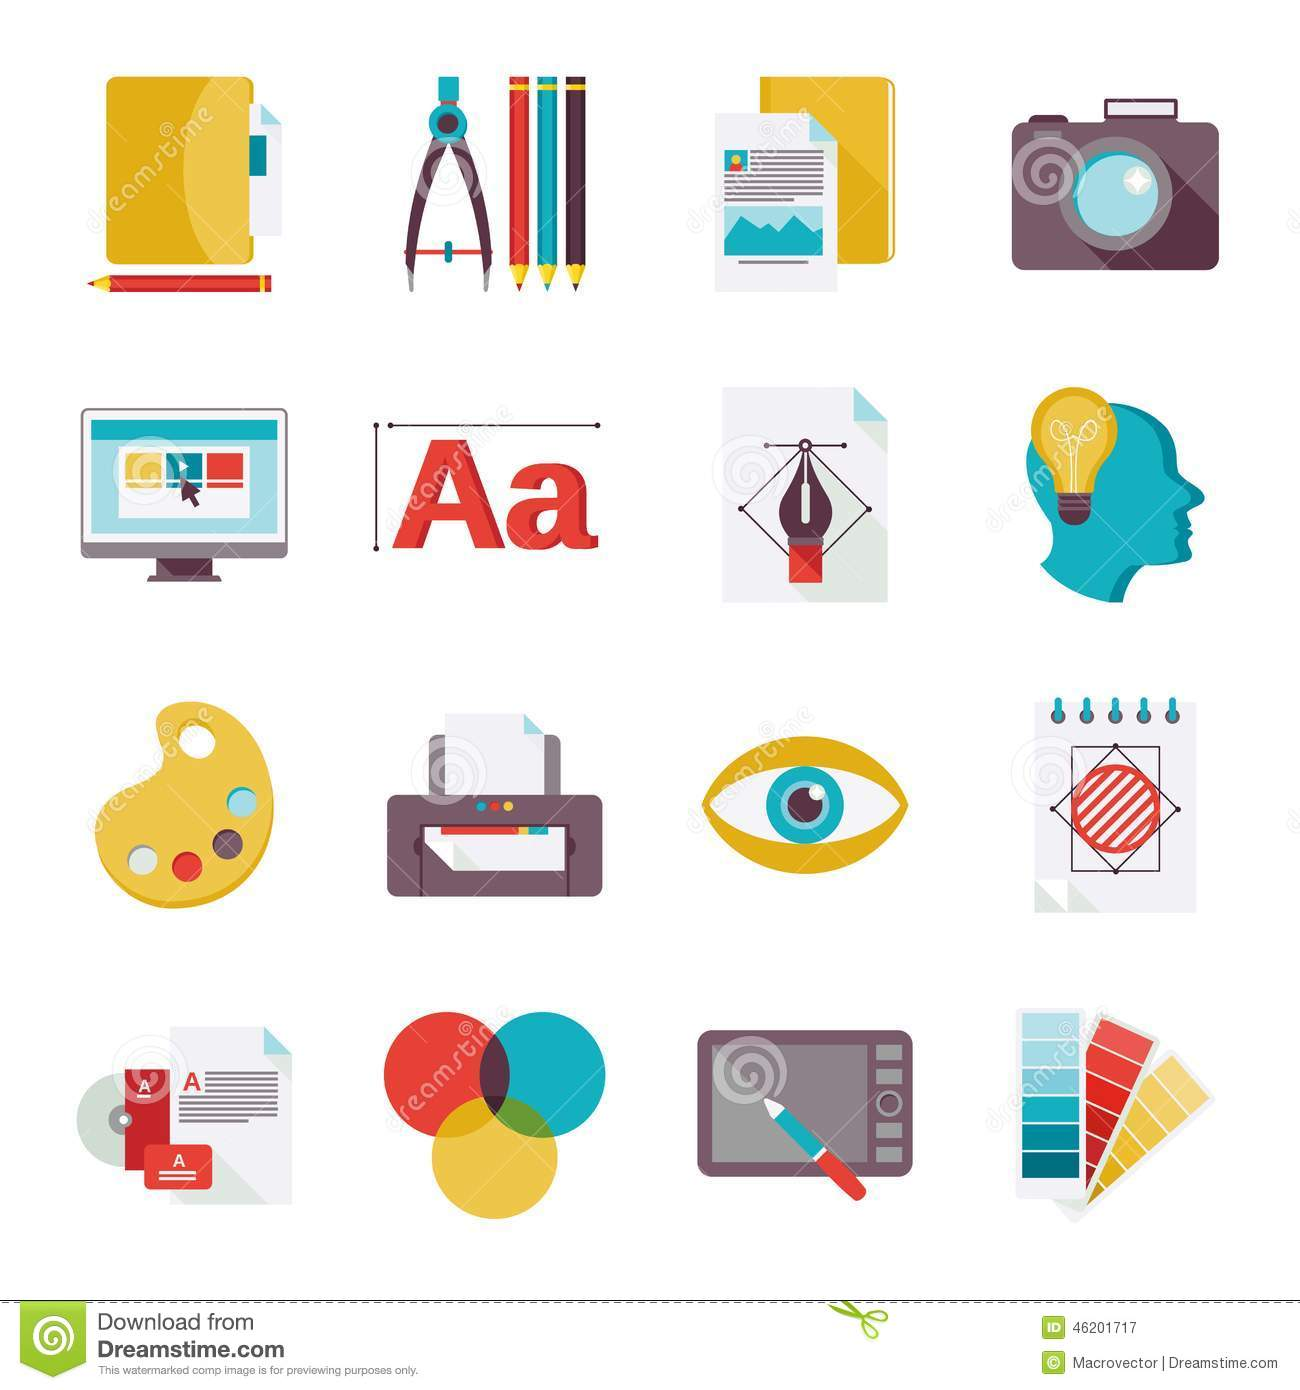 Graphic design studio tools creative process flat icons set isolated